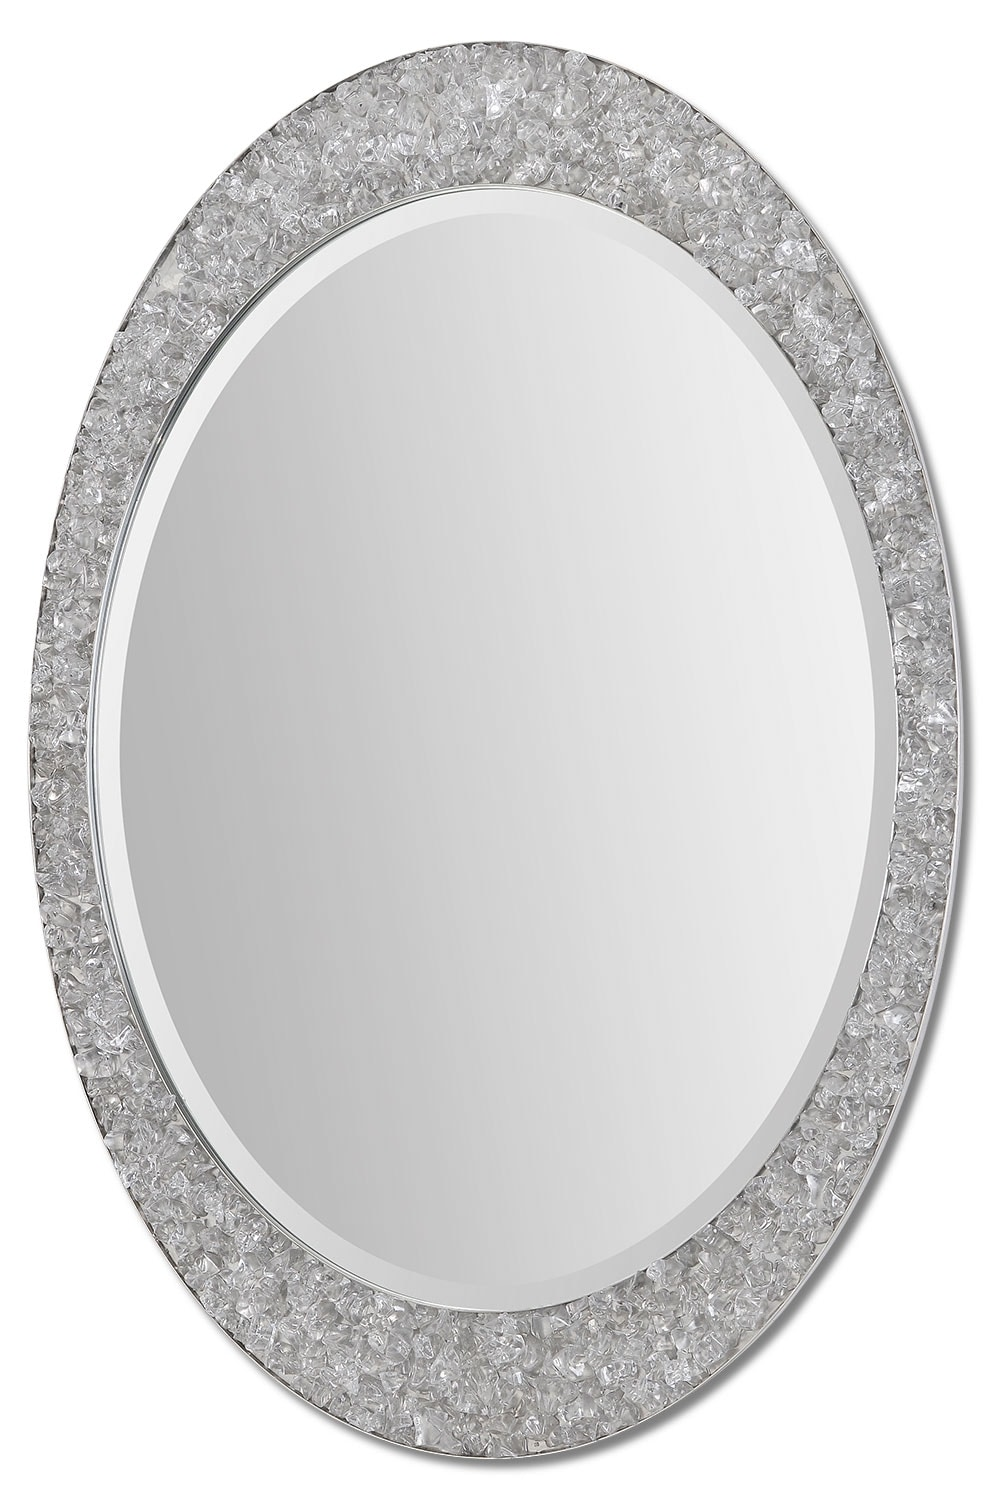 Home Accessories - Sirens Mirror